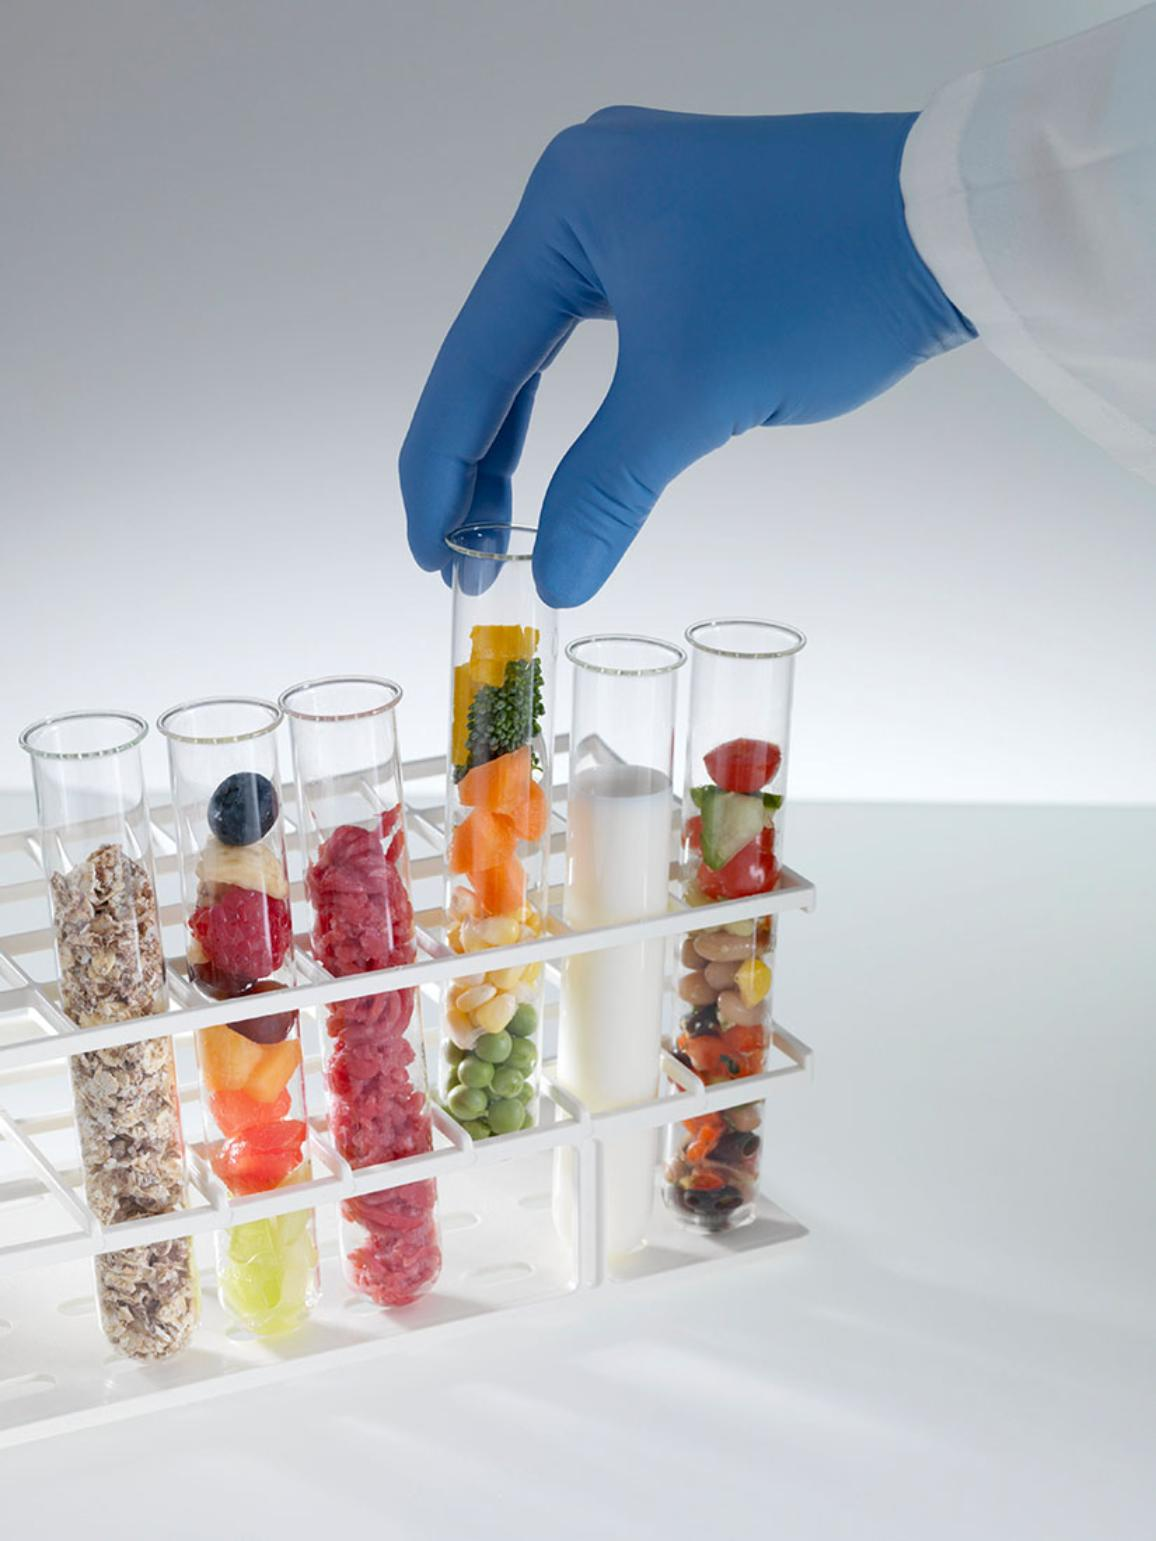 Scientist selecting a test tube containing vegetables